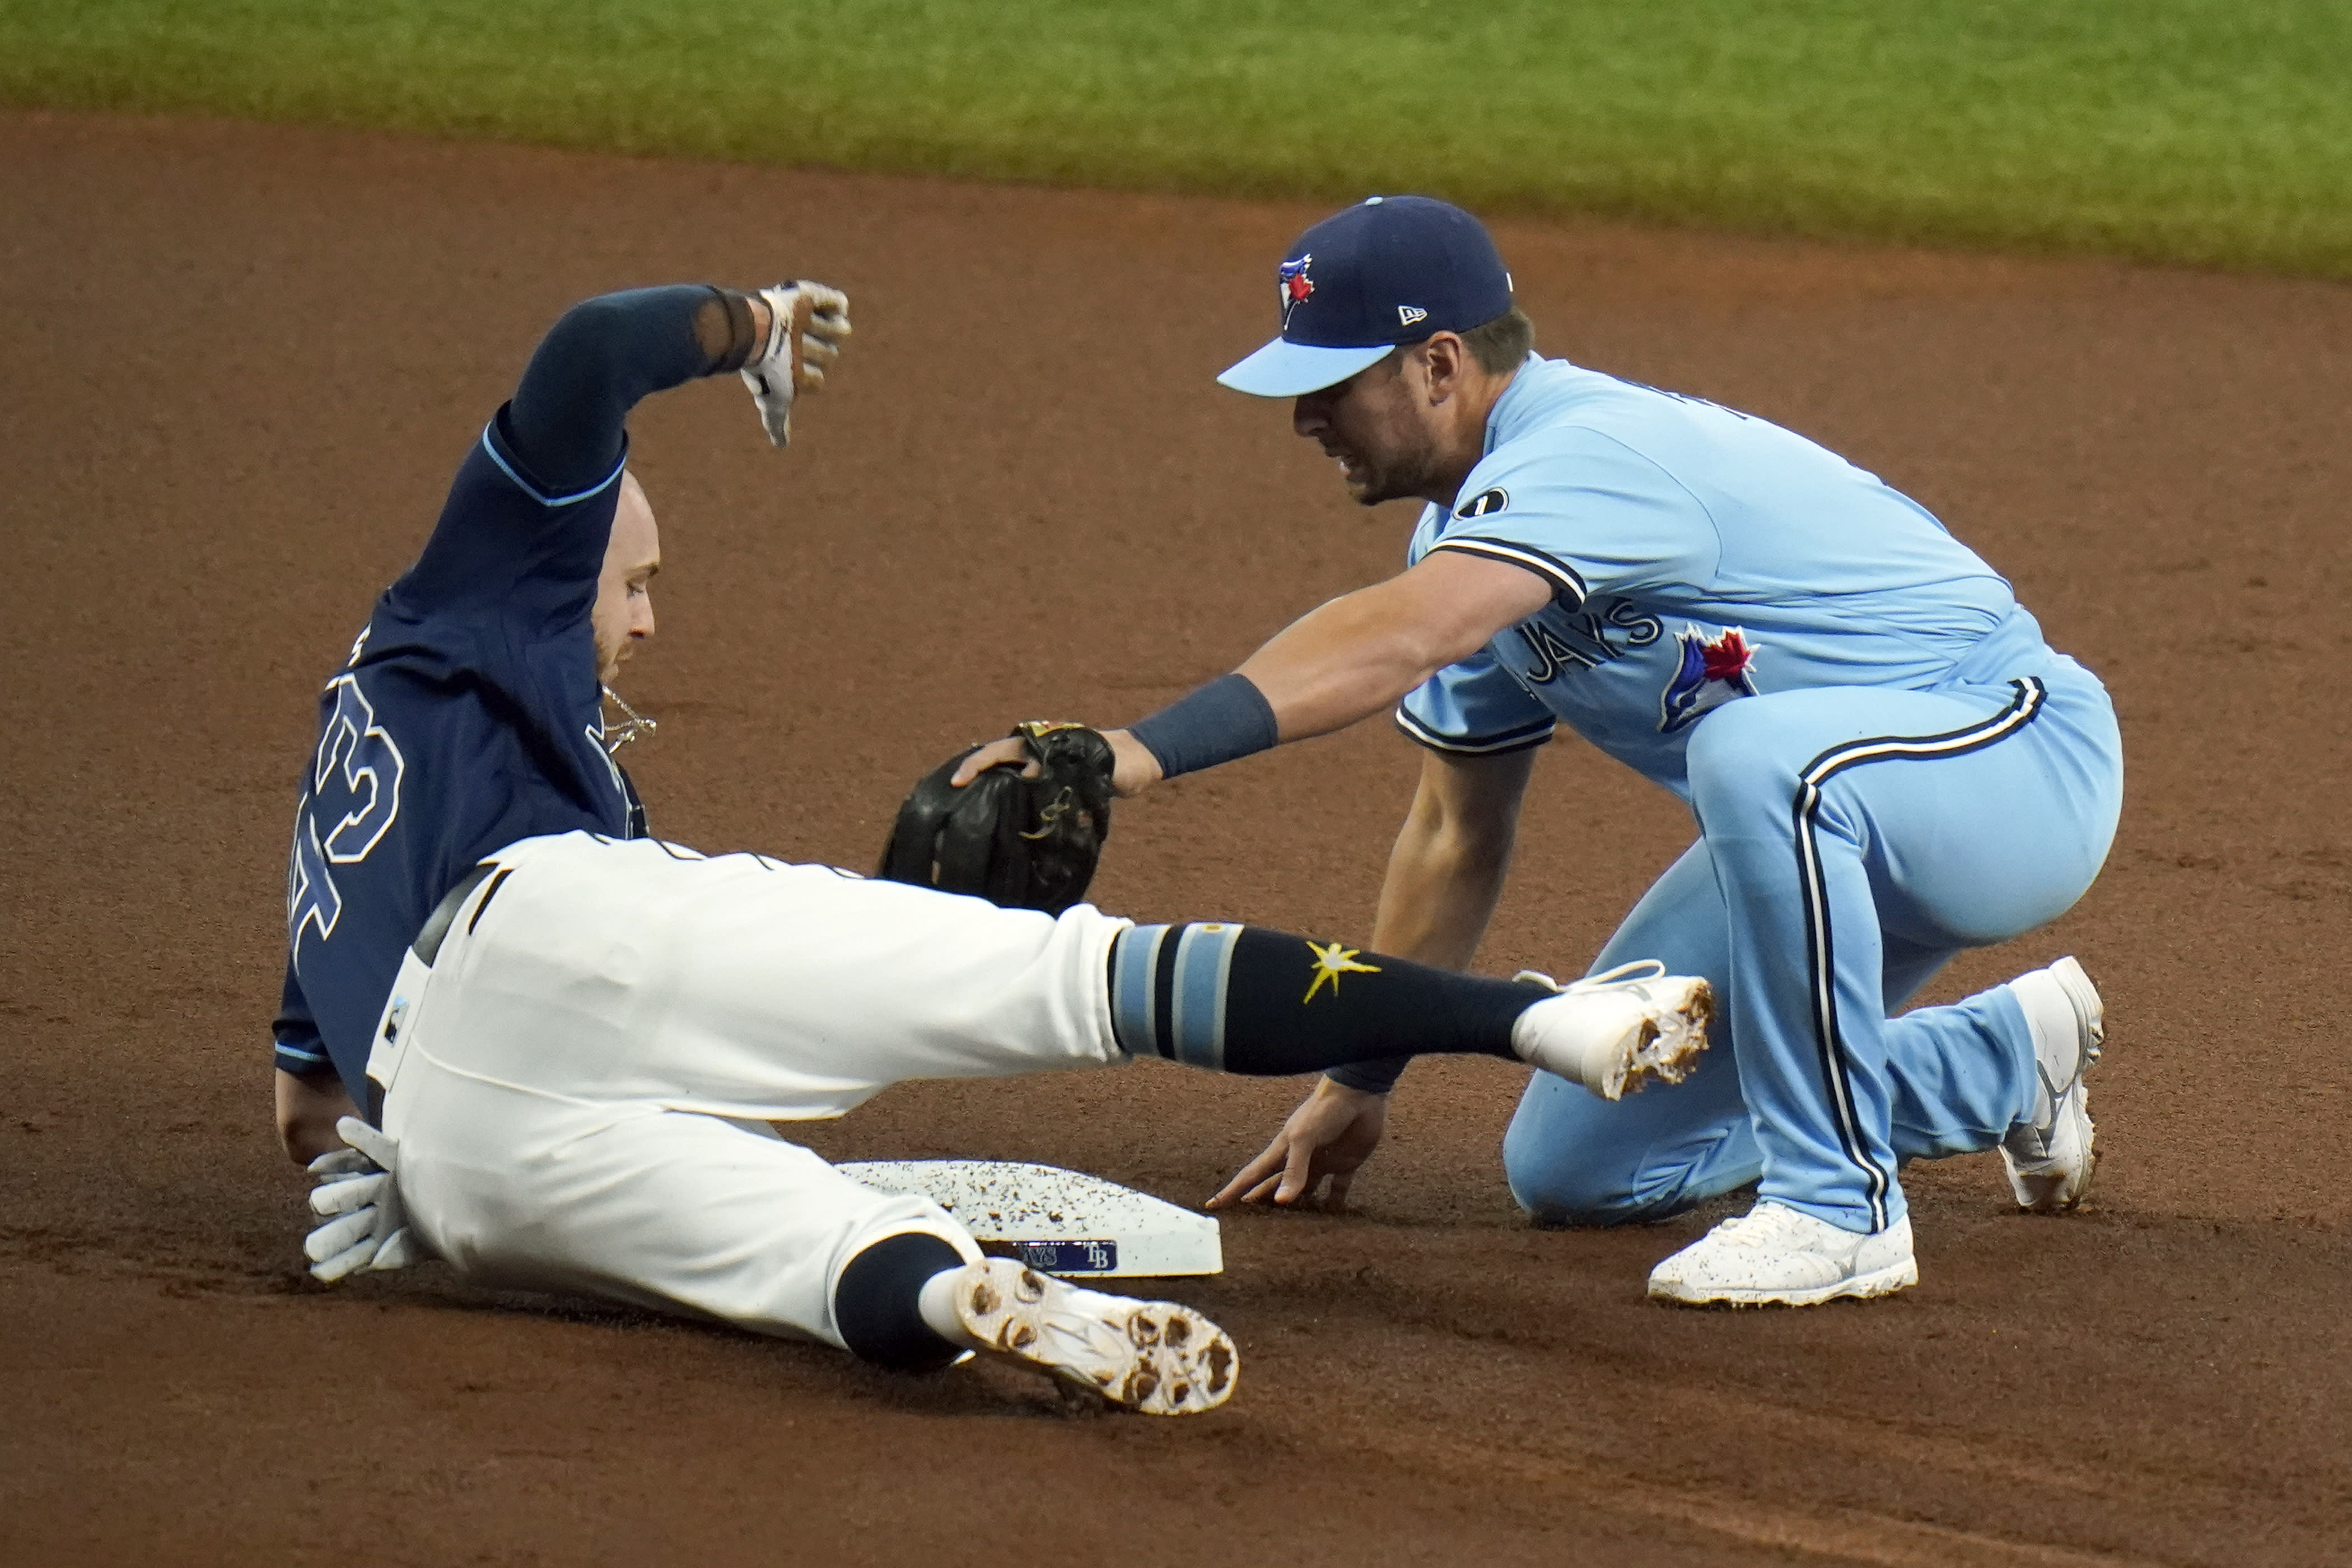 Toronto Blue Jays second baseman Joe Panik tags out Tampa Bay Rays' Michael Brosseau (43) at second base after Brosseau was caught trying to stretch a single into a double during the first inning of Game 2 of an American League wild-card baseball series Wednesday, Sept. 30, 2020, in St. Petersburg, Fla. (AP Photo/Chris O'Meara)